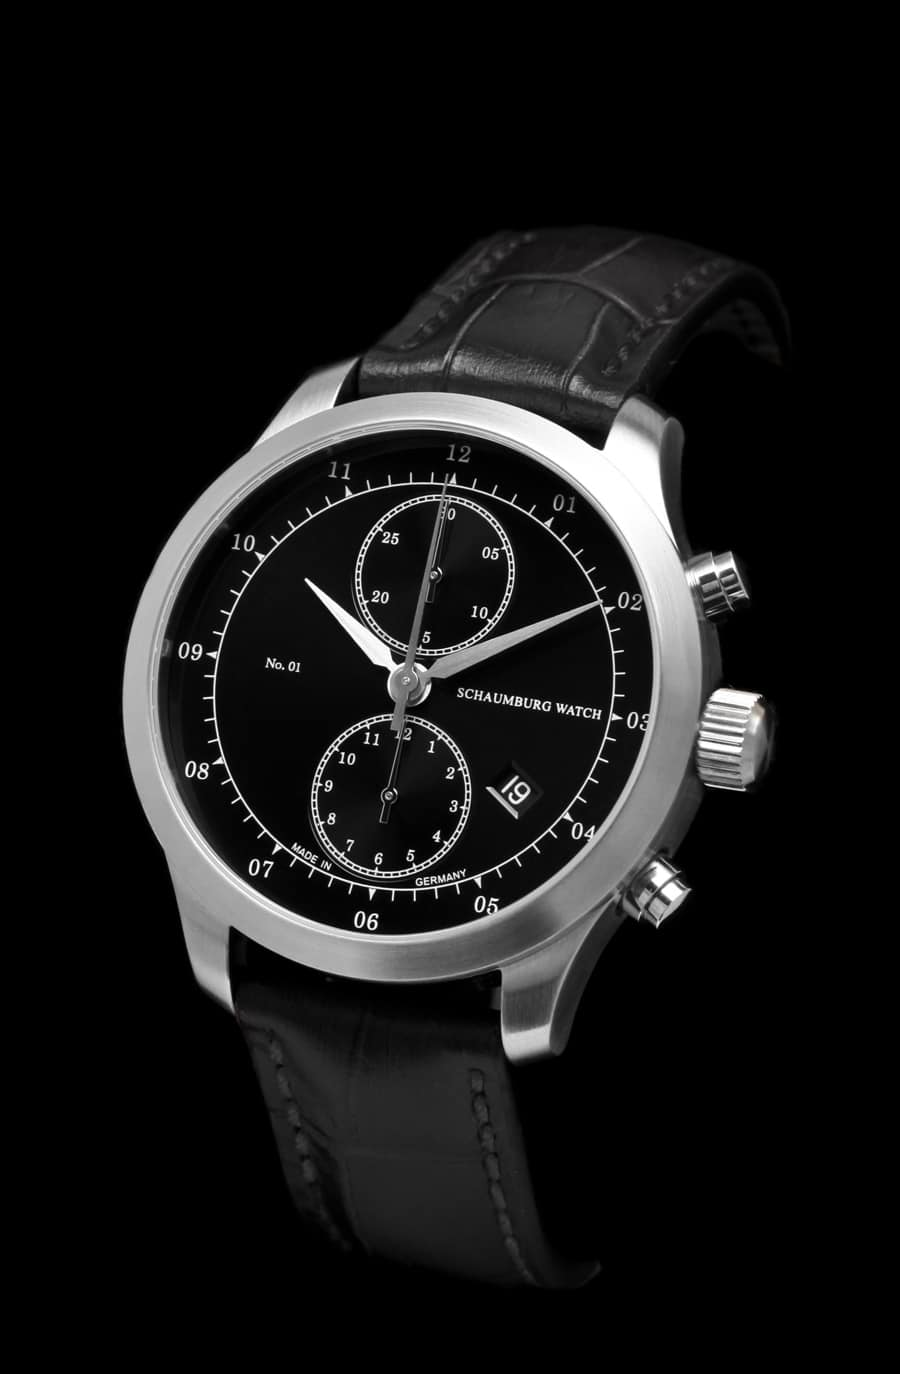 Schaumburg Watch: Chronograph No.01, schwarzes Zifferblatt